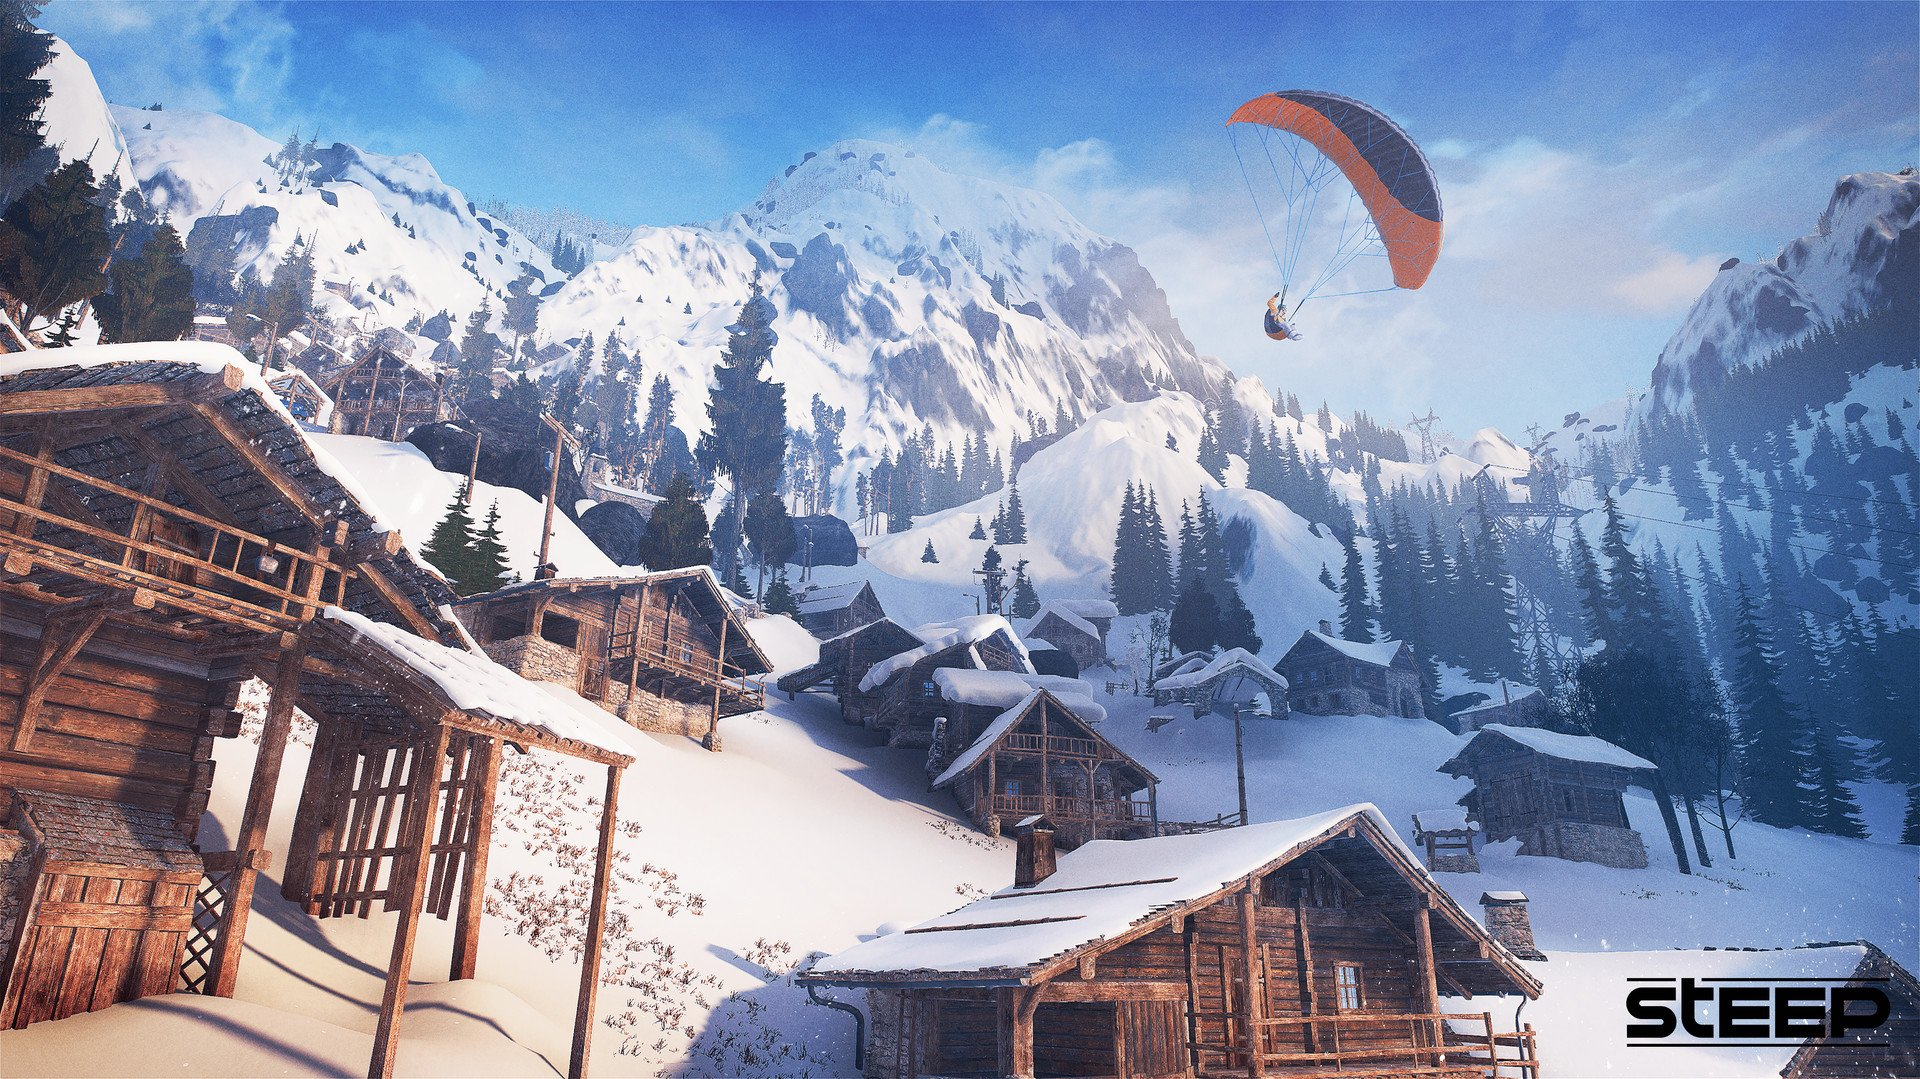 Steep is free on Uplay for six days in May